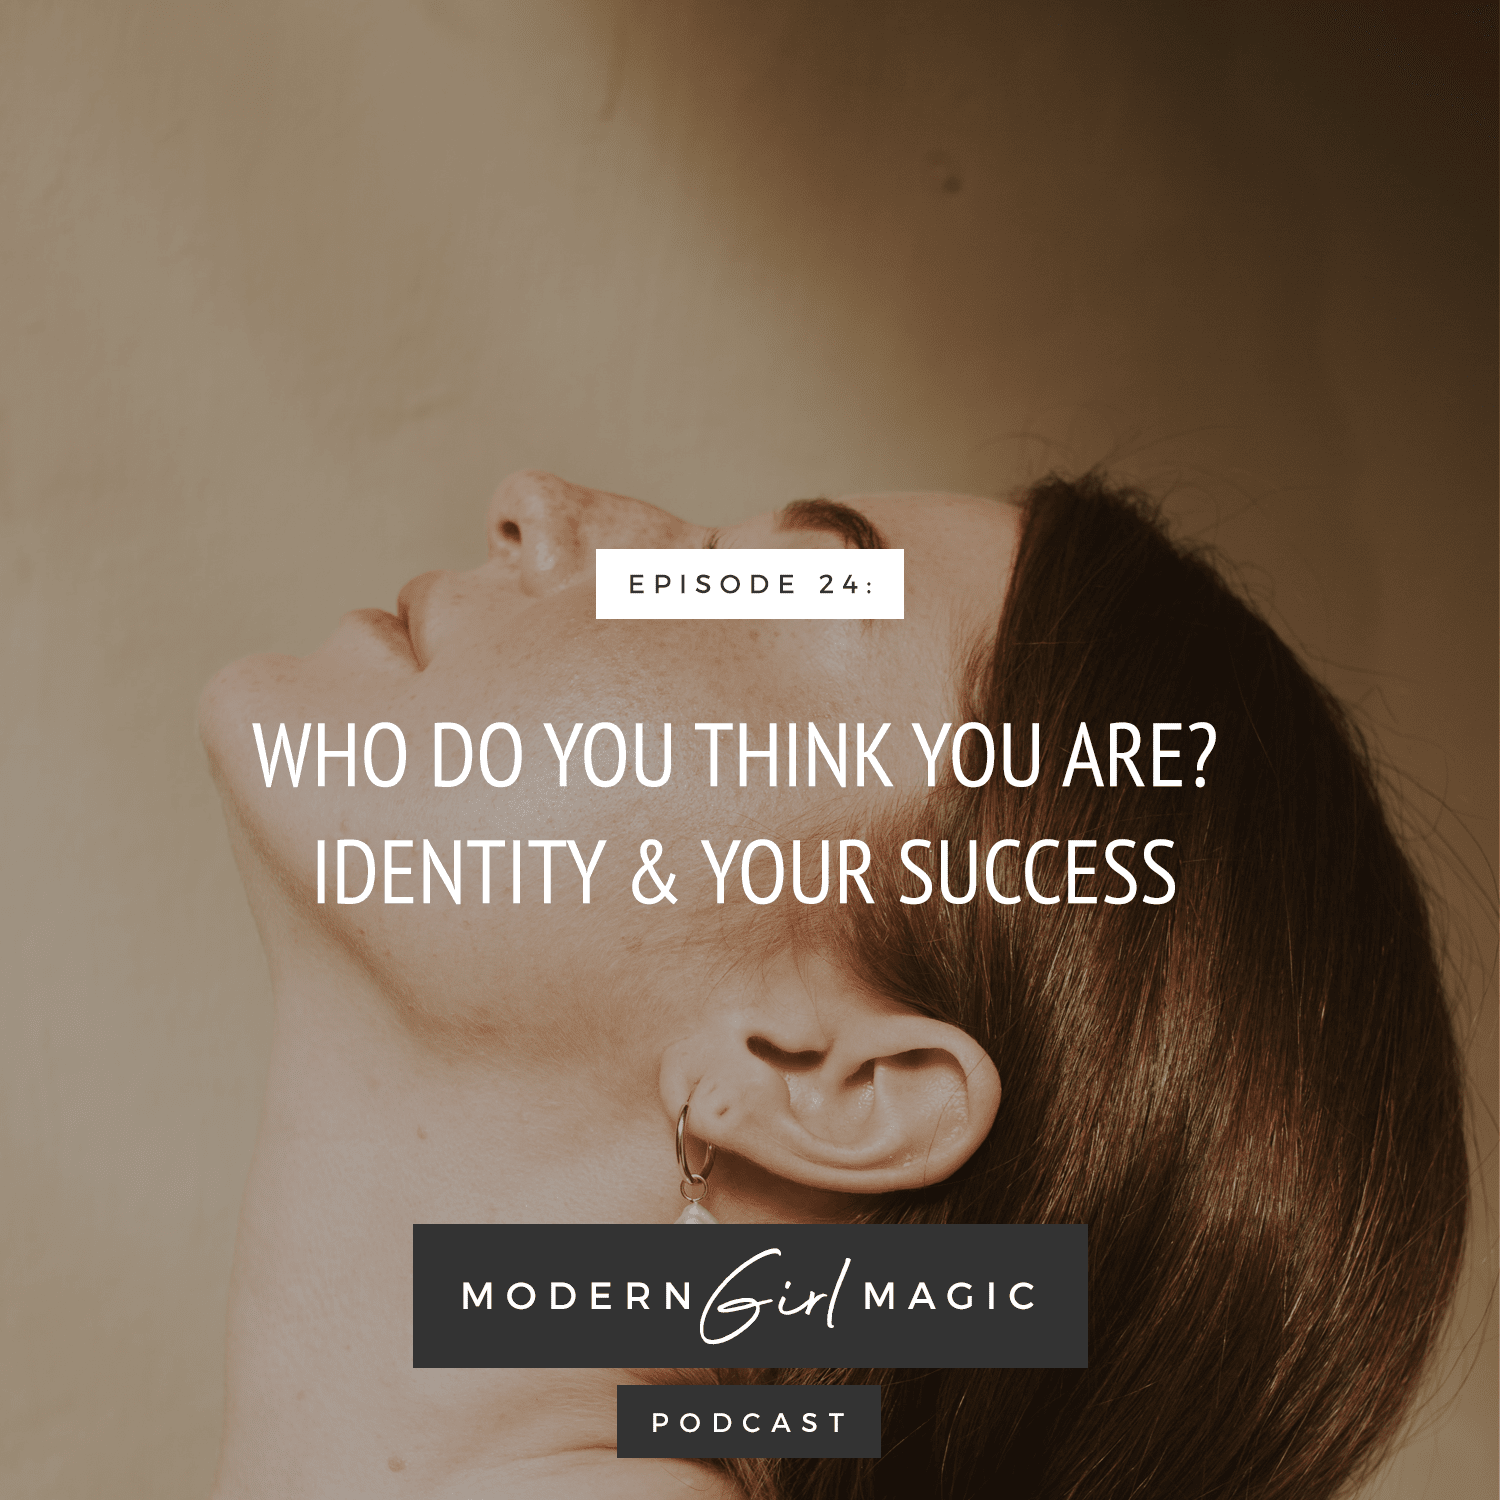 Modern Girl Magic Episode #24: Who Do You Think You Are? Identity & Your Success